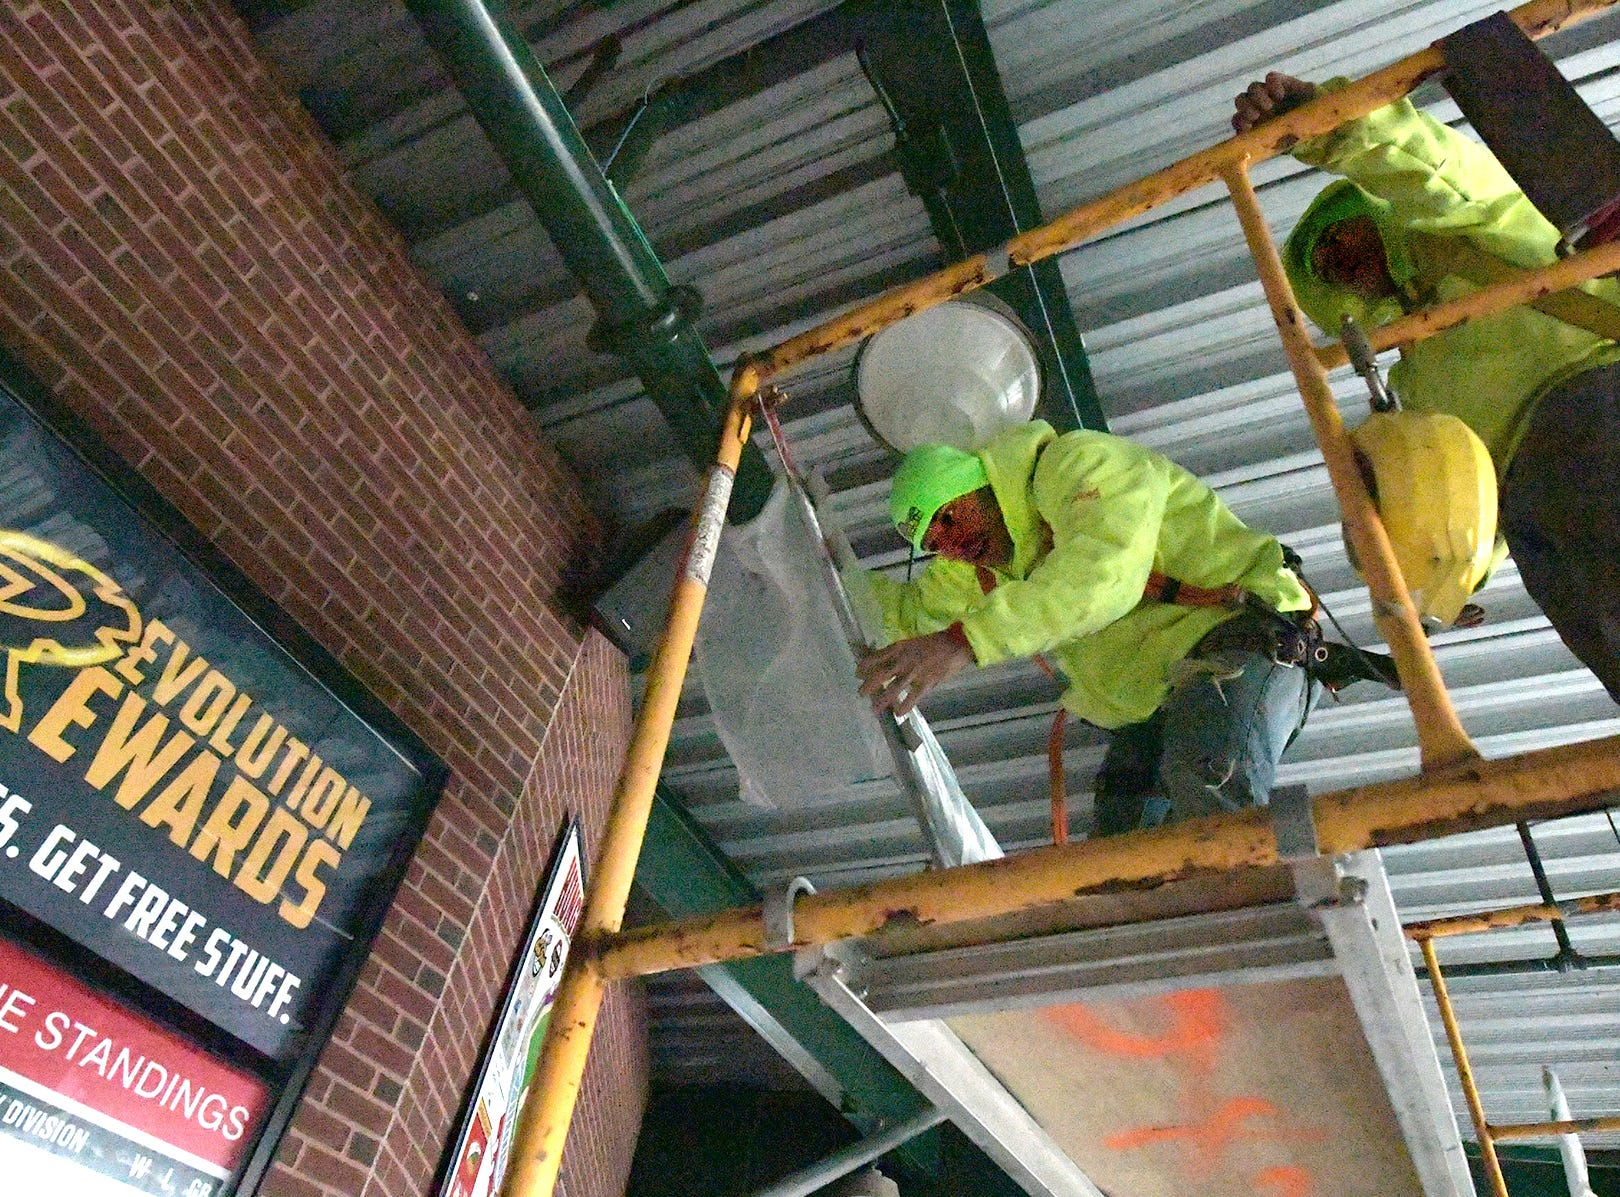 Foundation Building Materials employees William Sanders, left, and Silas Yashinski, cover pipings before spraying insulation at PeoplesBank Park Friday, Nov. 9, 2018. Several upgrades to the stadium are underway in time for the 2019 season. Bill Kalina photo